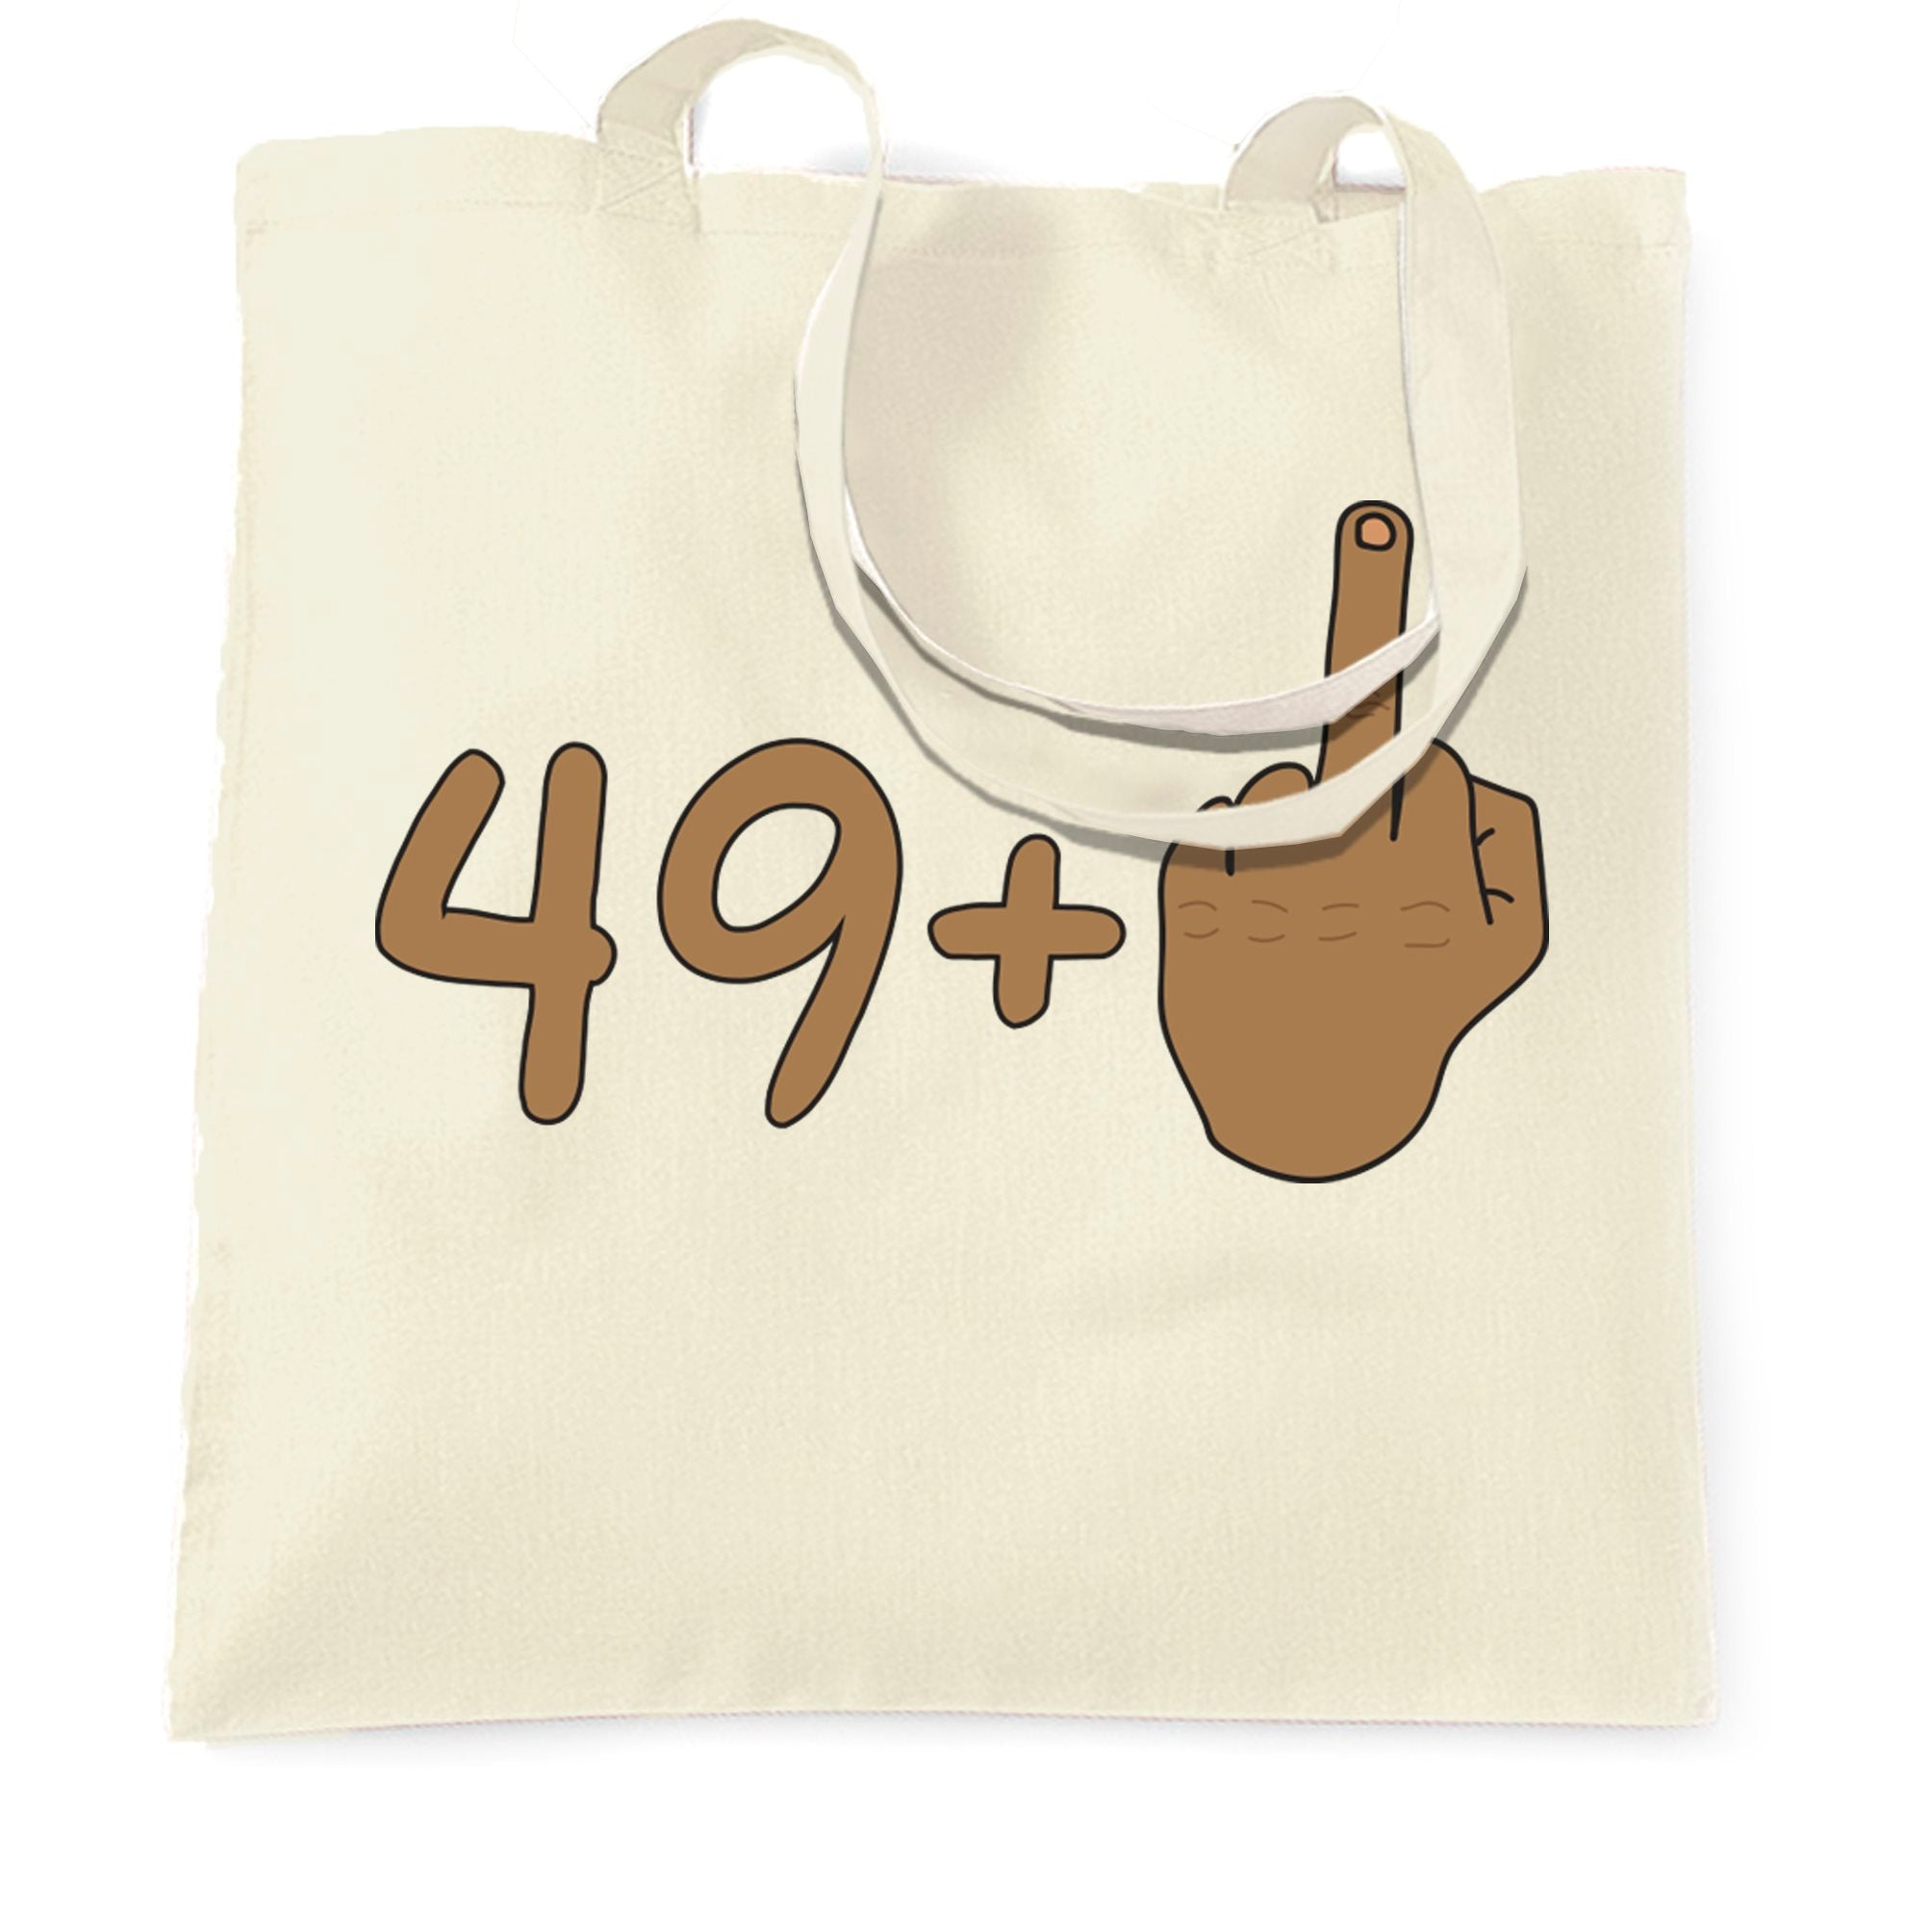 Rude 50th Birthday Tote Bag Tanned Middle Finger